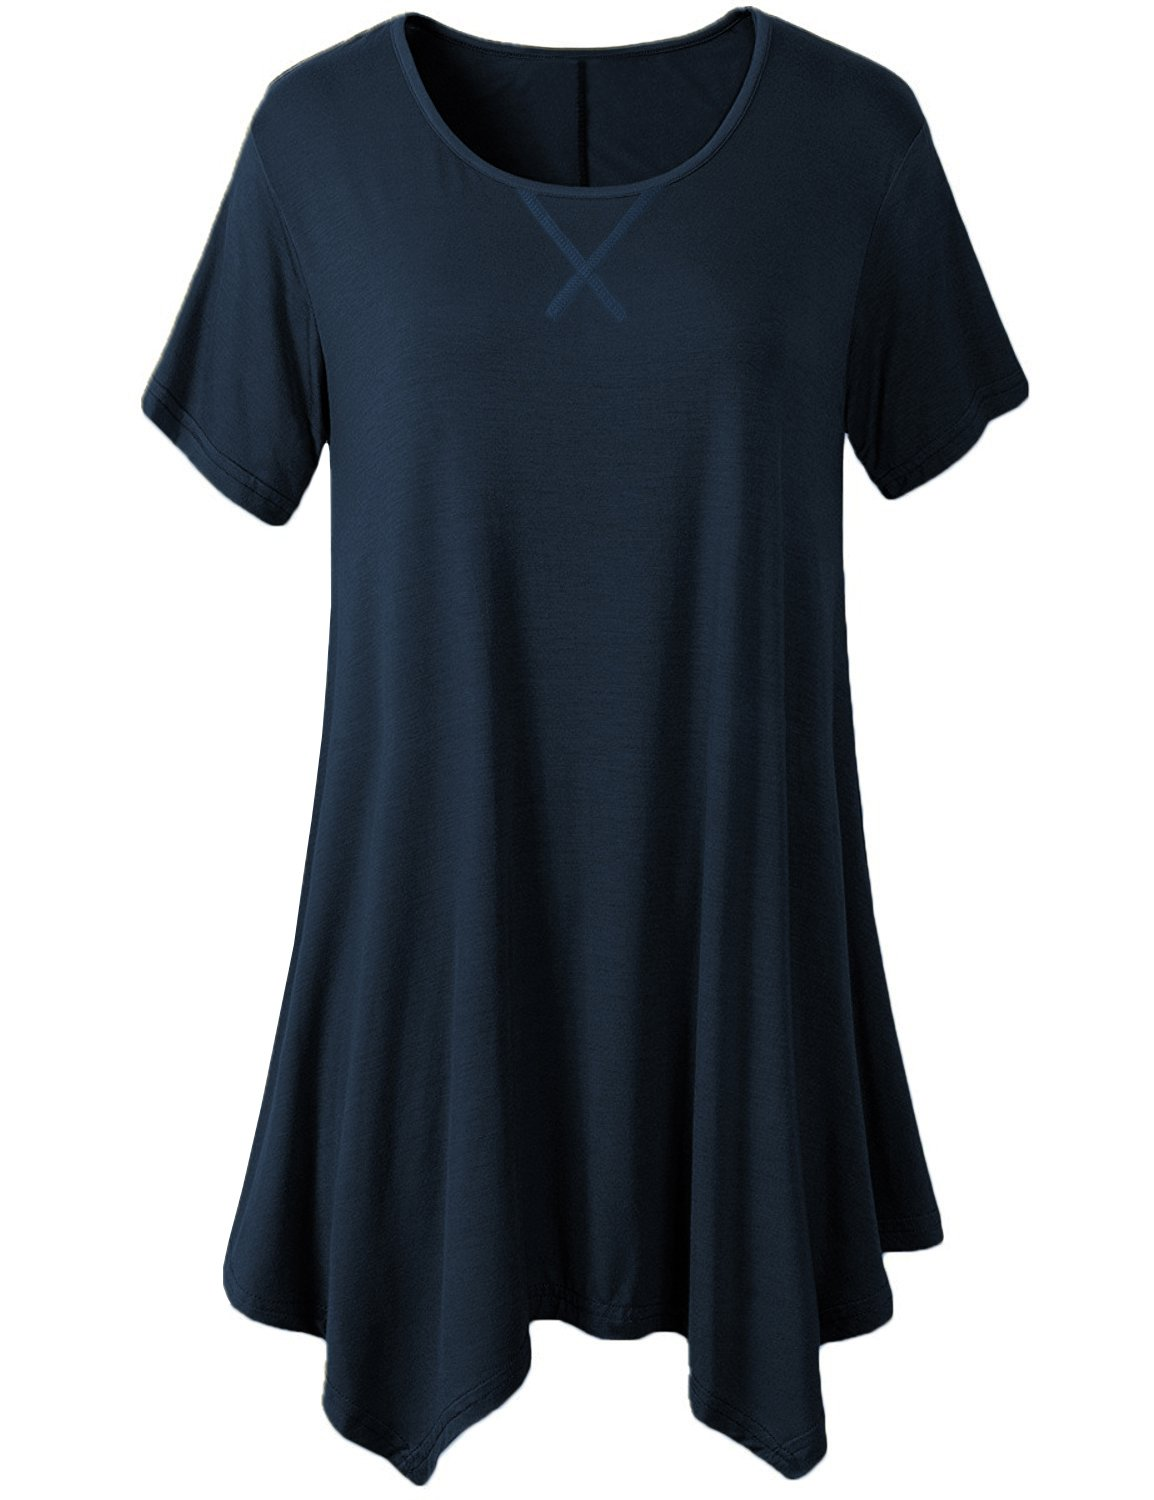 ARCITON Women's Summer Loose Fit Short Sleeve Swing Tunic Tops Casual V-Notch T-Shirts Navy Blue XL